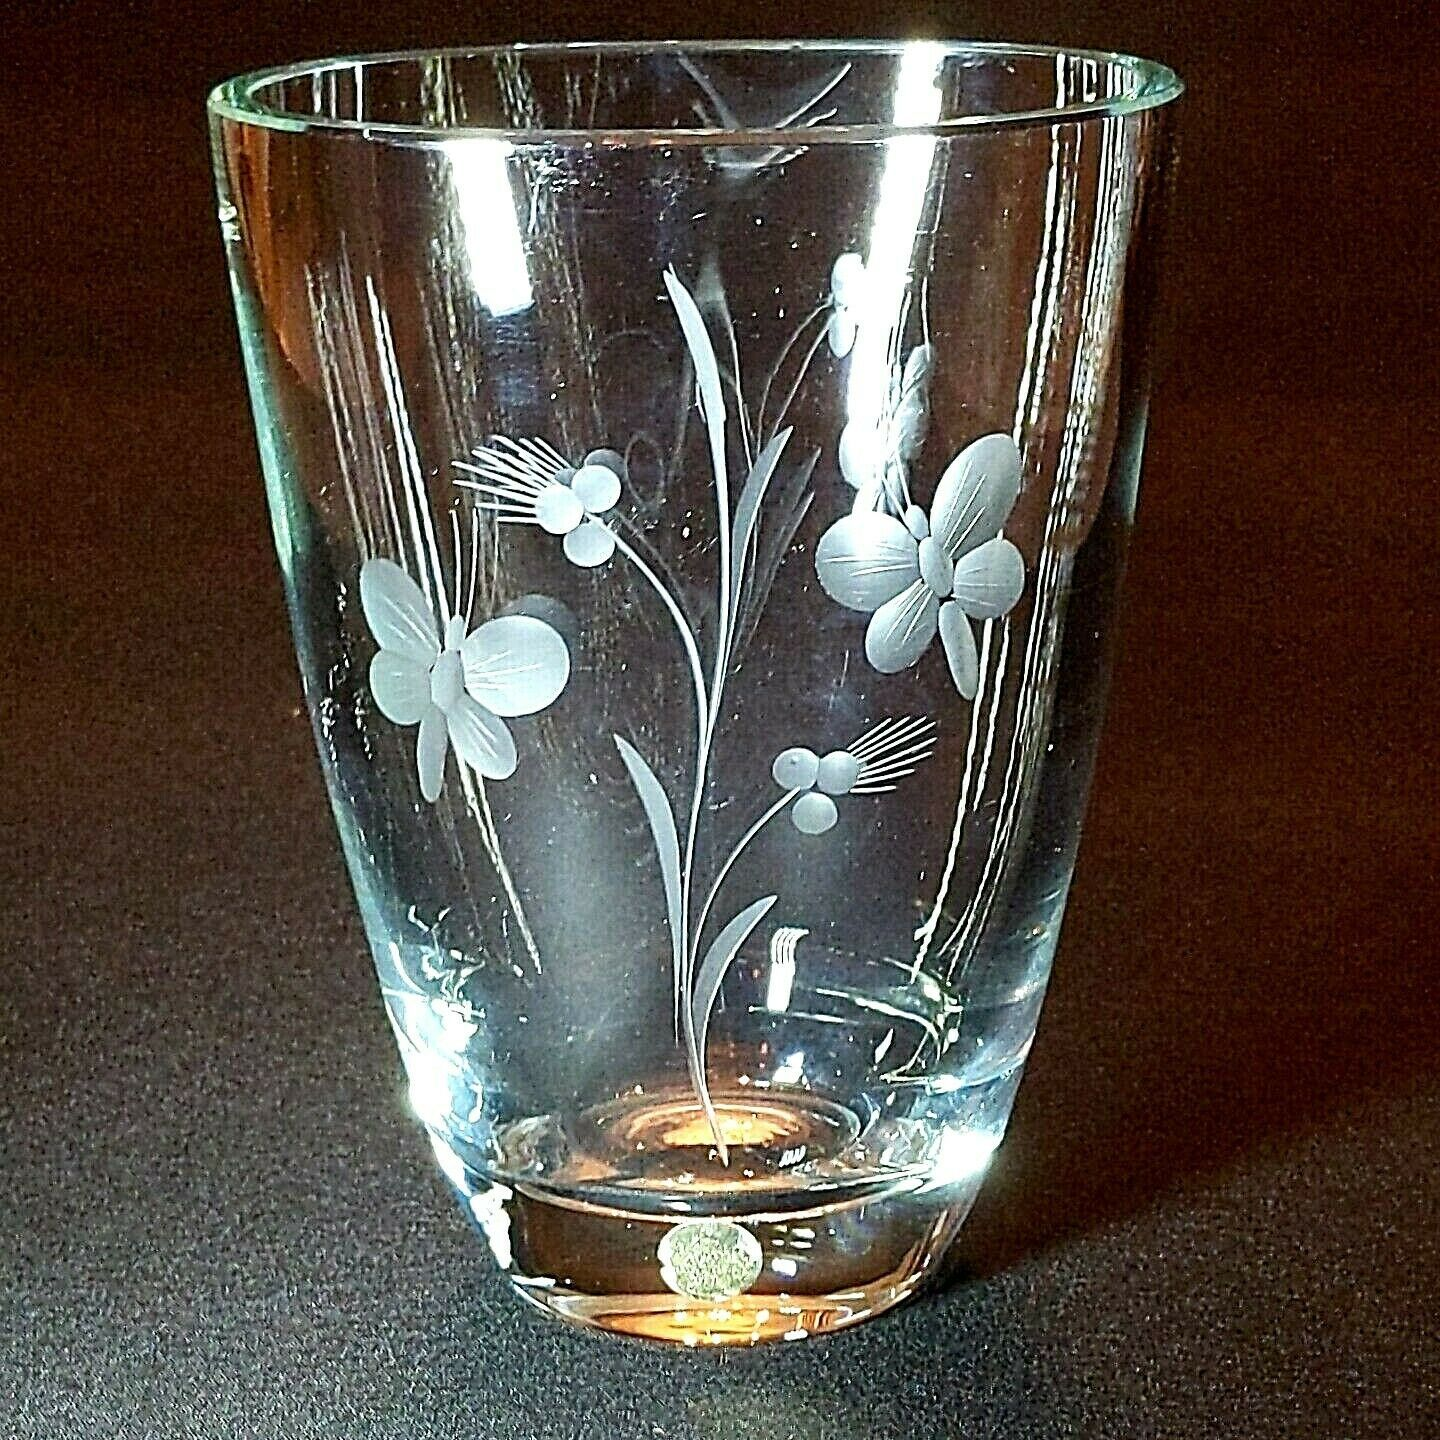 Primary image for 1 (One) KOSTA BODA VINTAGE Heavy Crystal Vase Etched Flowers & Butterflies M210